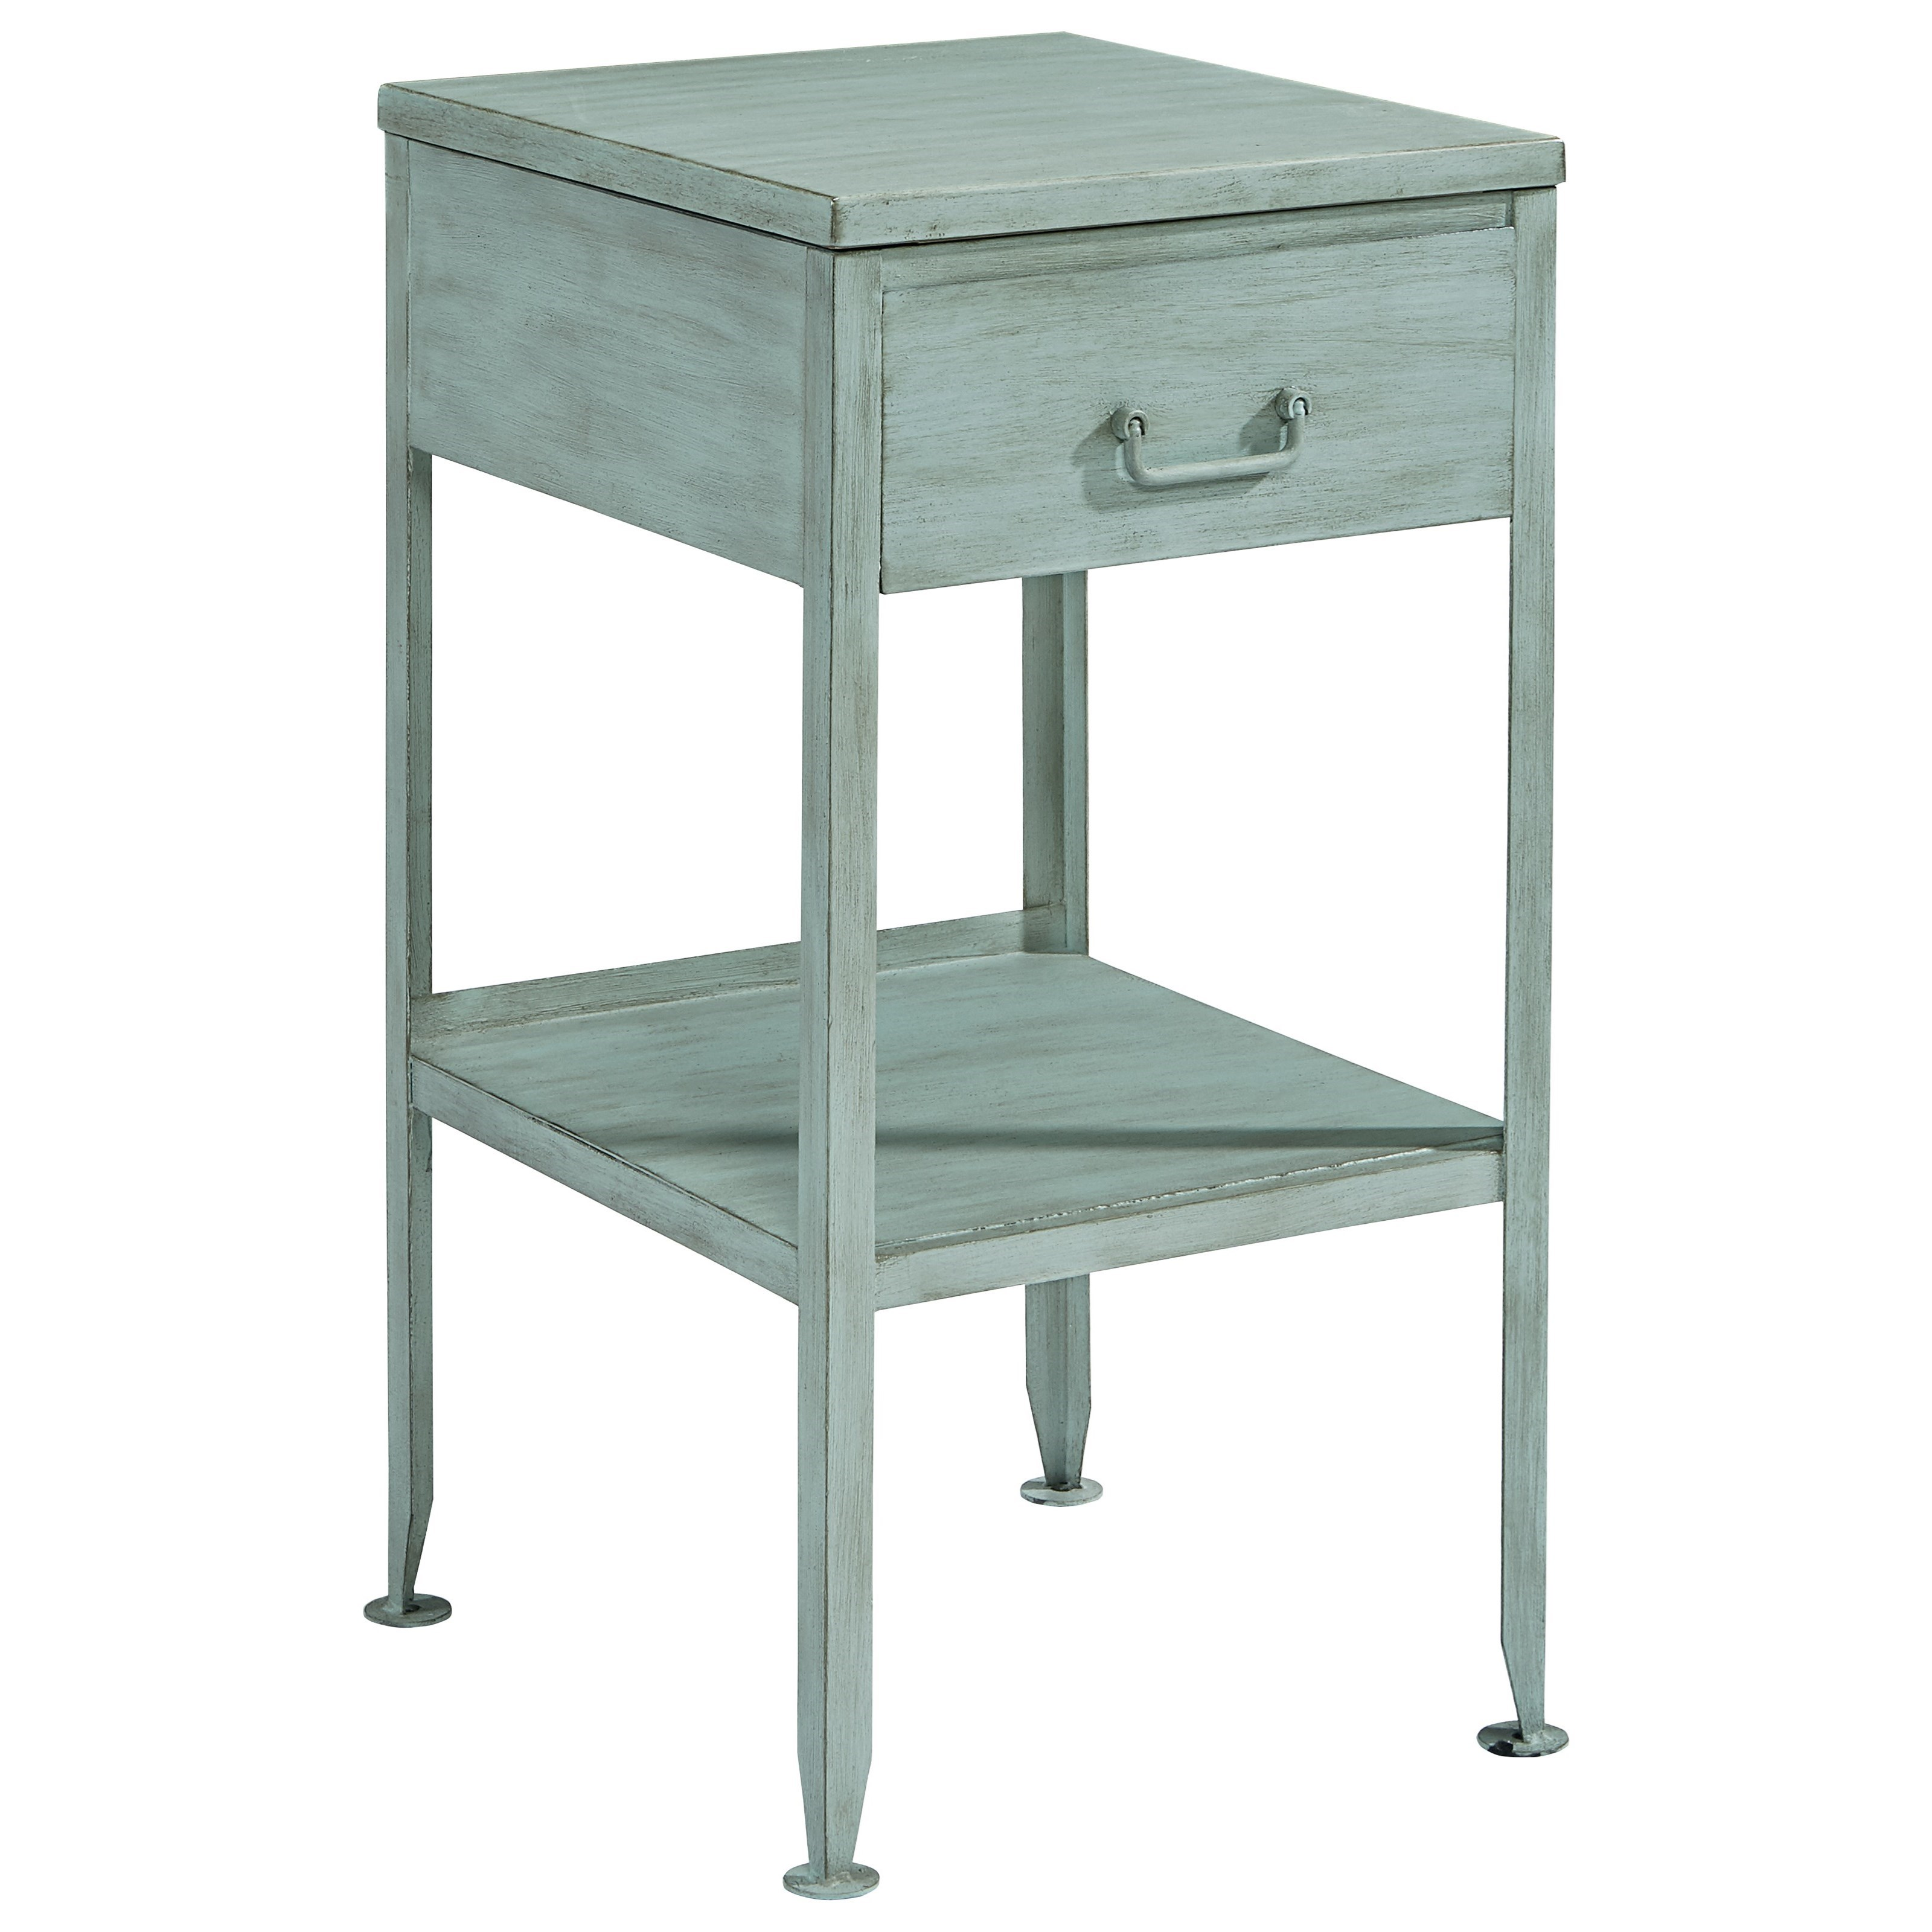 Magnolia home by joanna gaines accent elements 8030205d for Small occasional tables